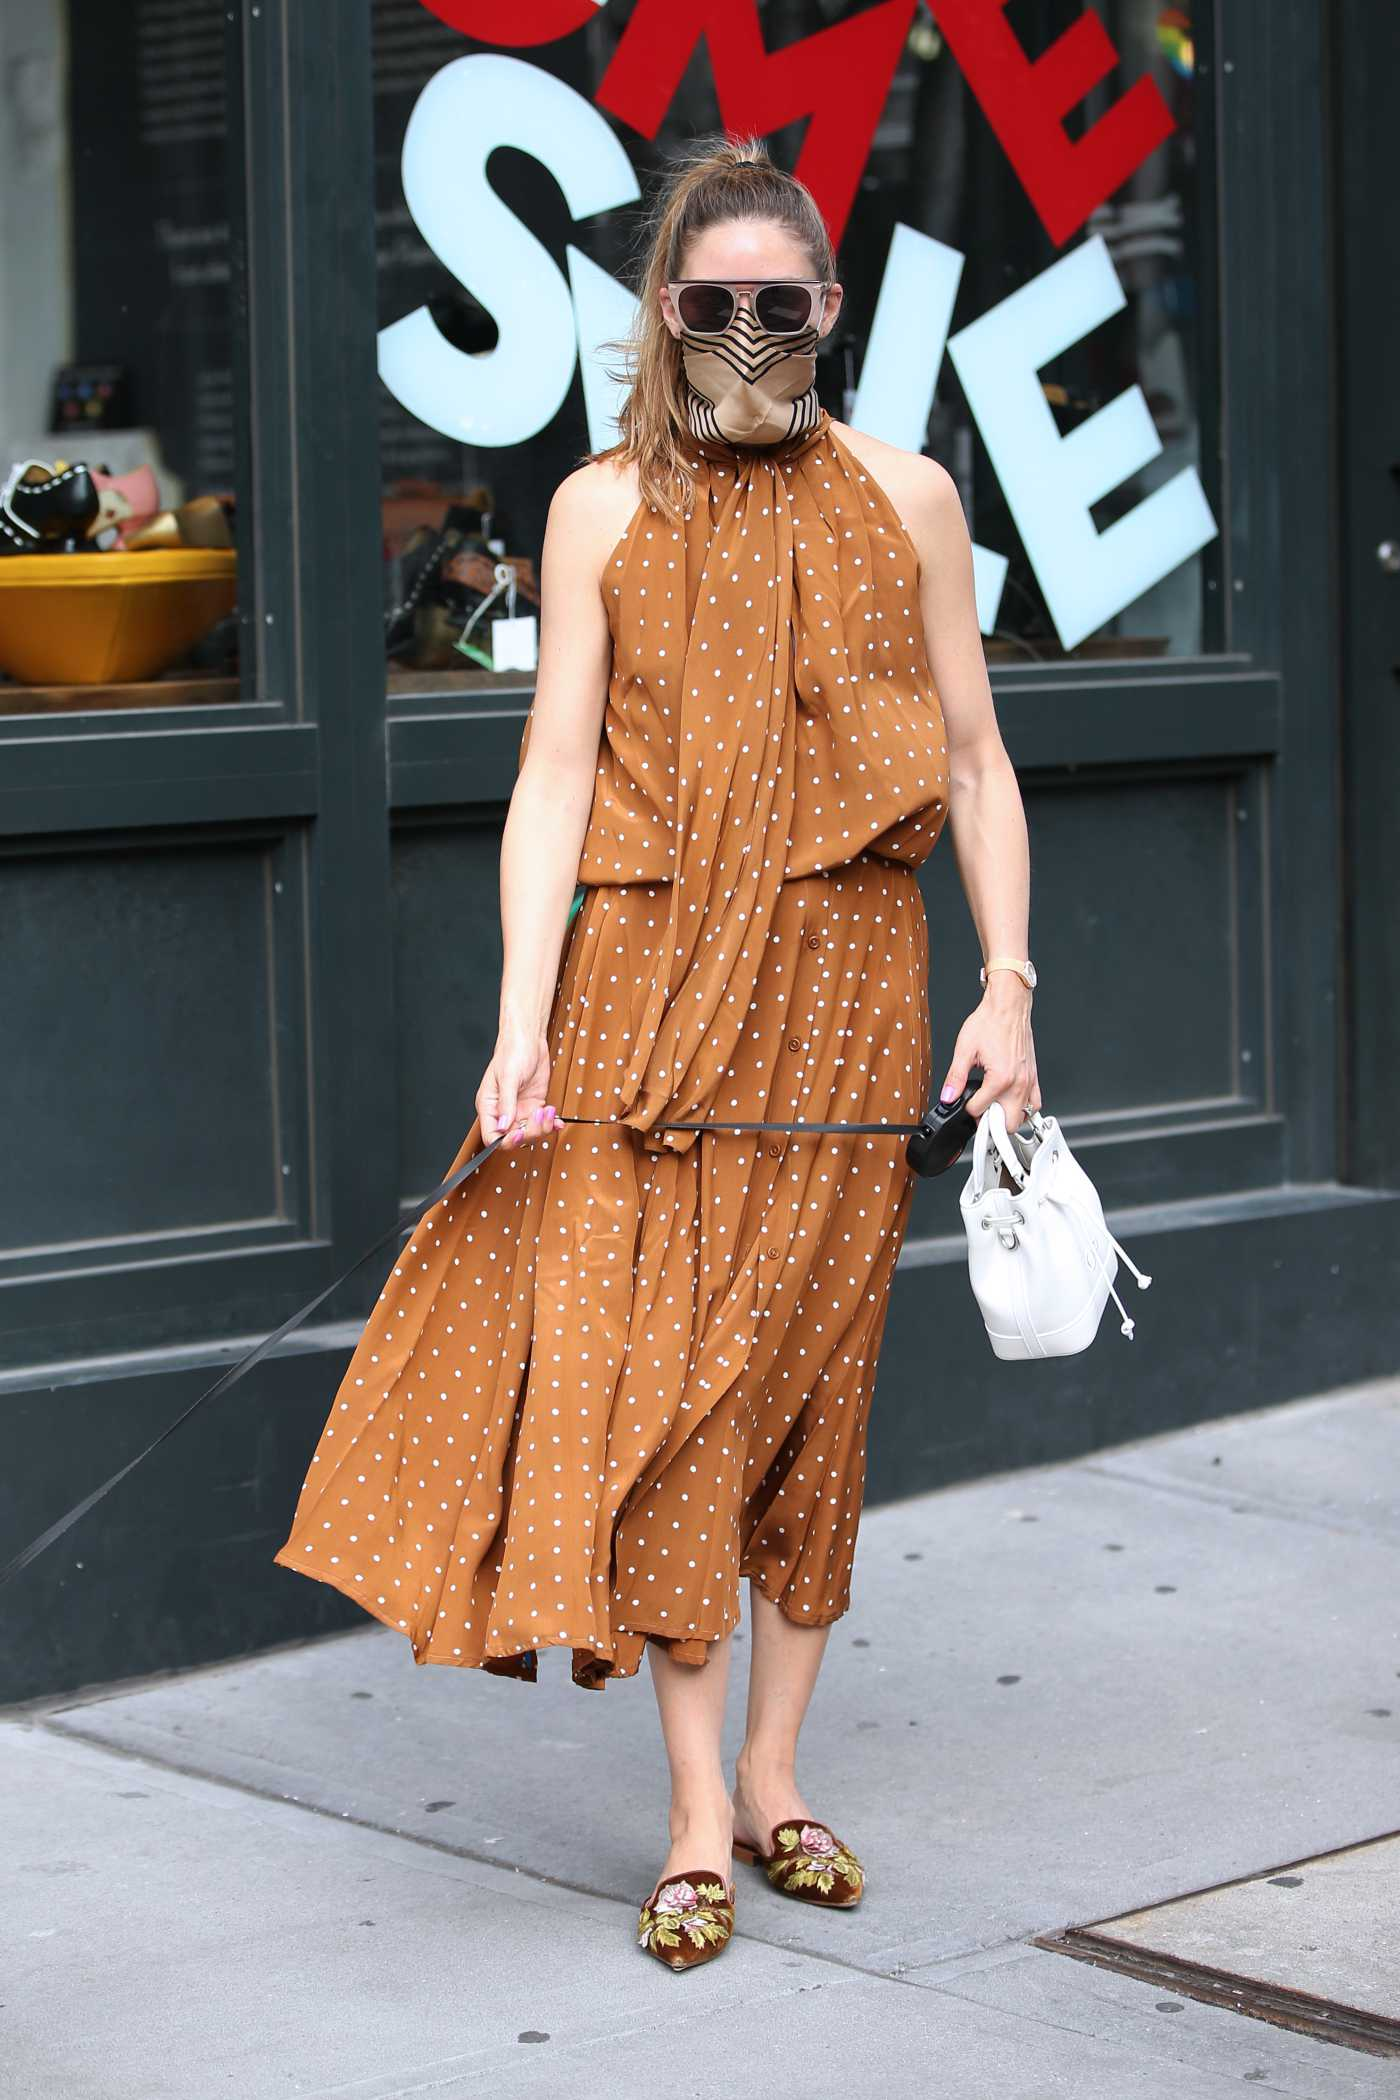 Olivia Palermo in a Tan Polka Dot Dress Walks Her Dog in New York 07/23/2020